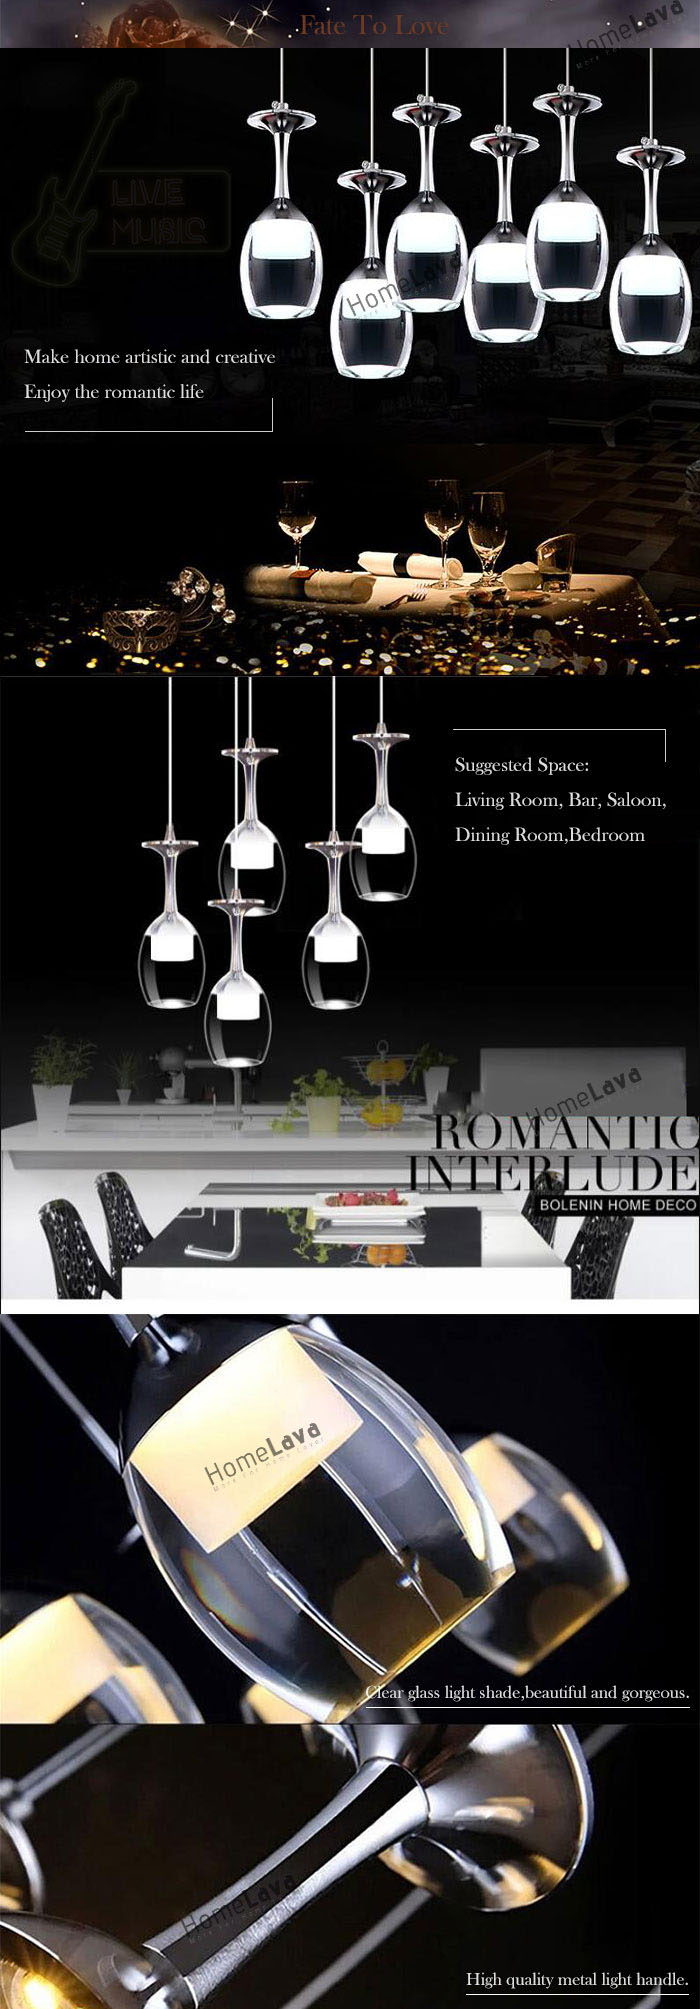 Ceiling Lights 25cm Round 9W LED Bar Wineglass Chandelier Dining Room Lighting Ideas Pendant Lamp(Fate To Love)